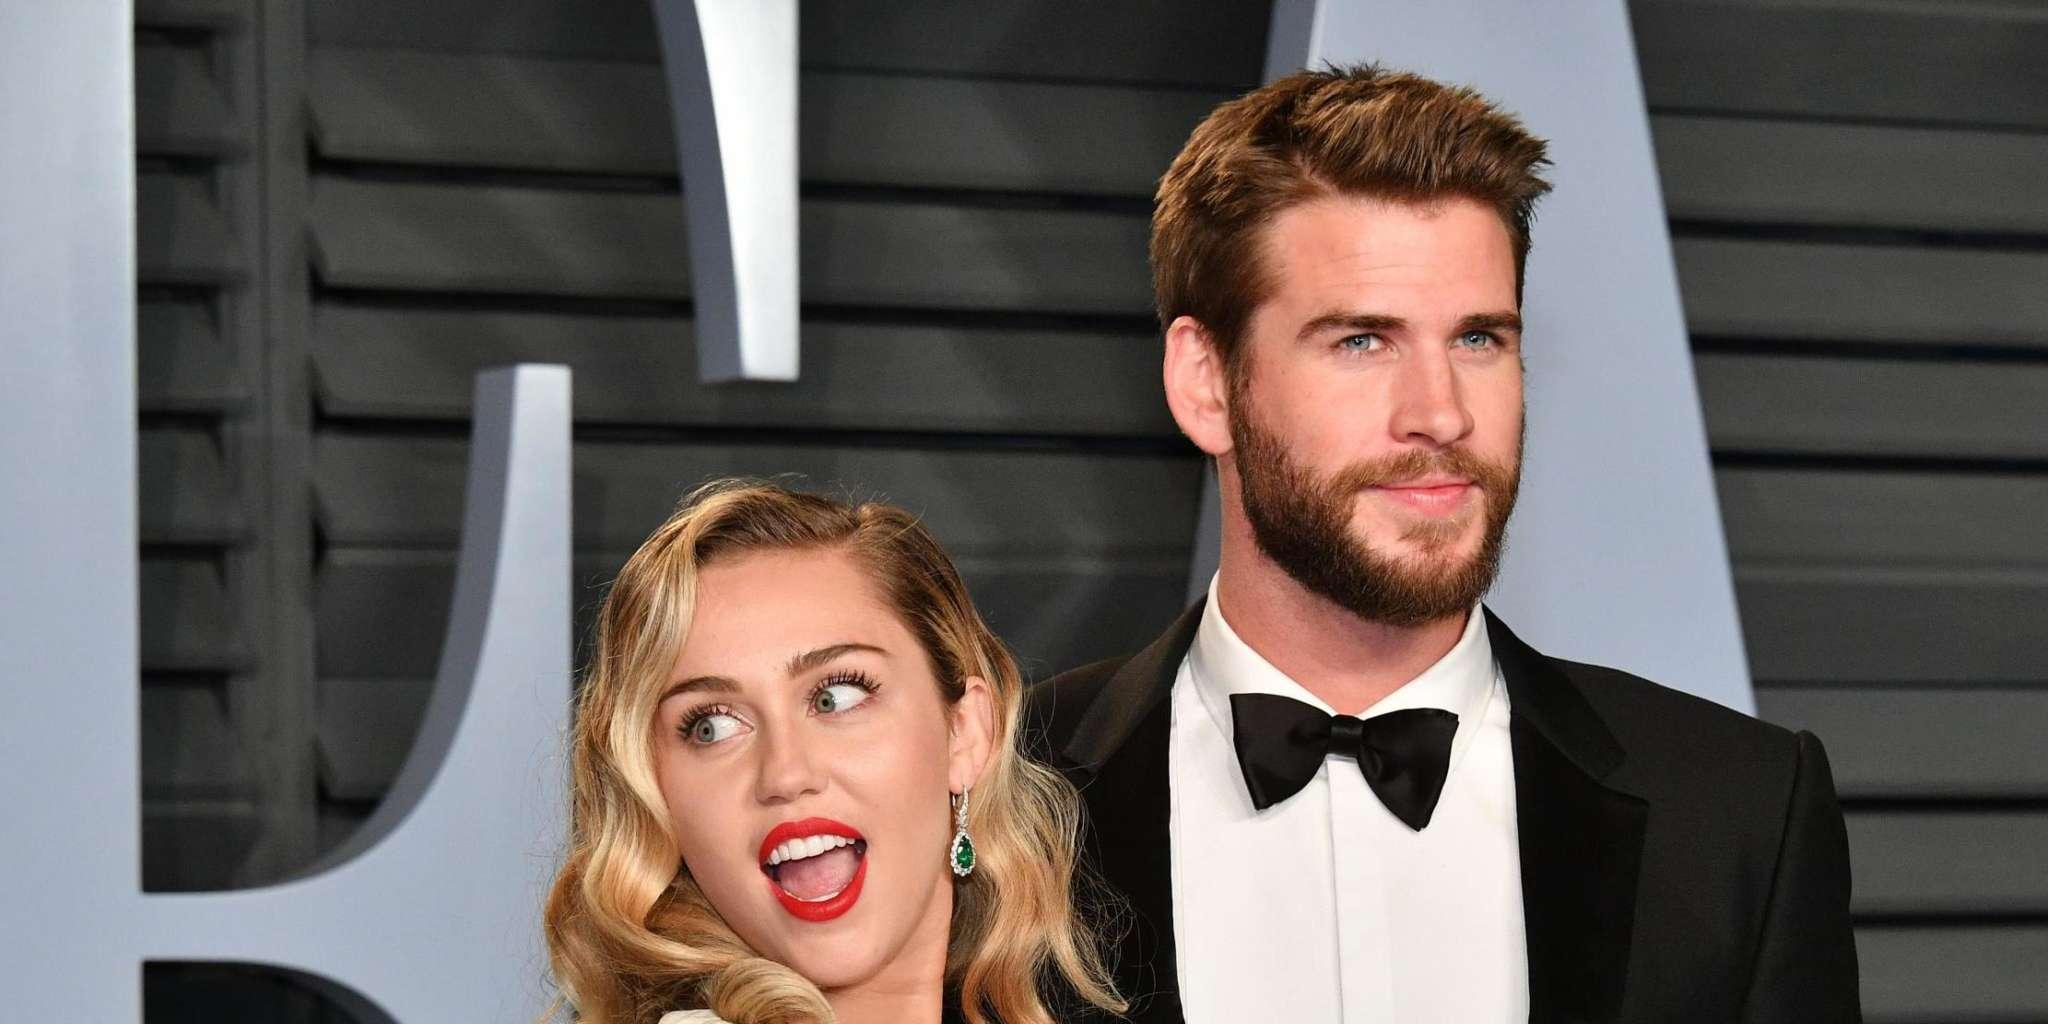 Miley Cyrus Says Her And Liam Hemsworth's Divorce Really 'Sucked' - Here's Why!